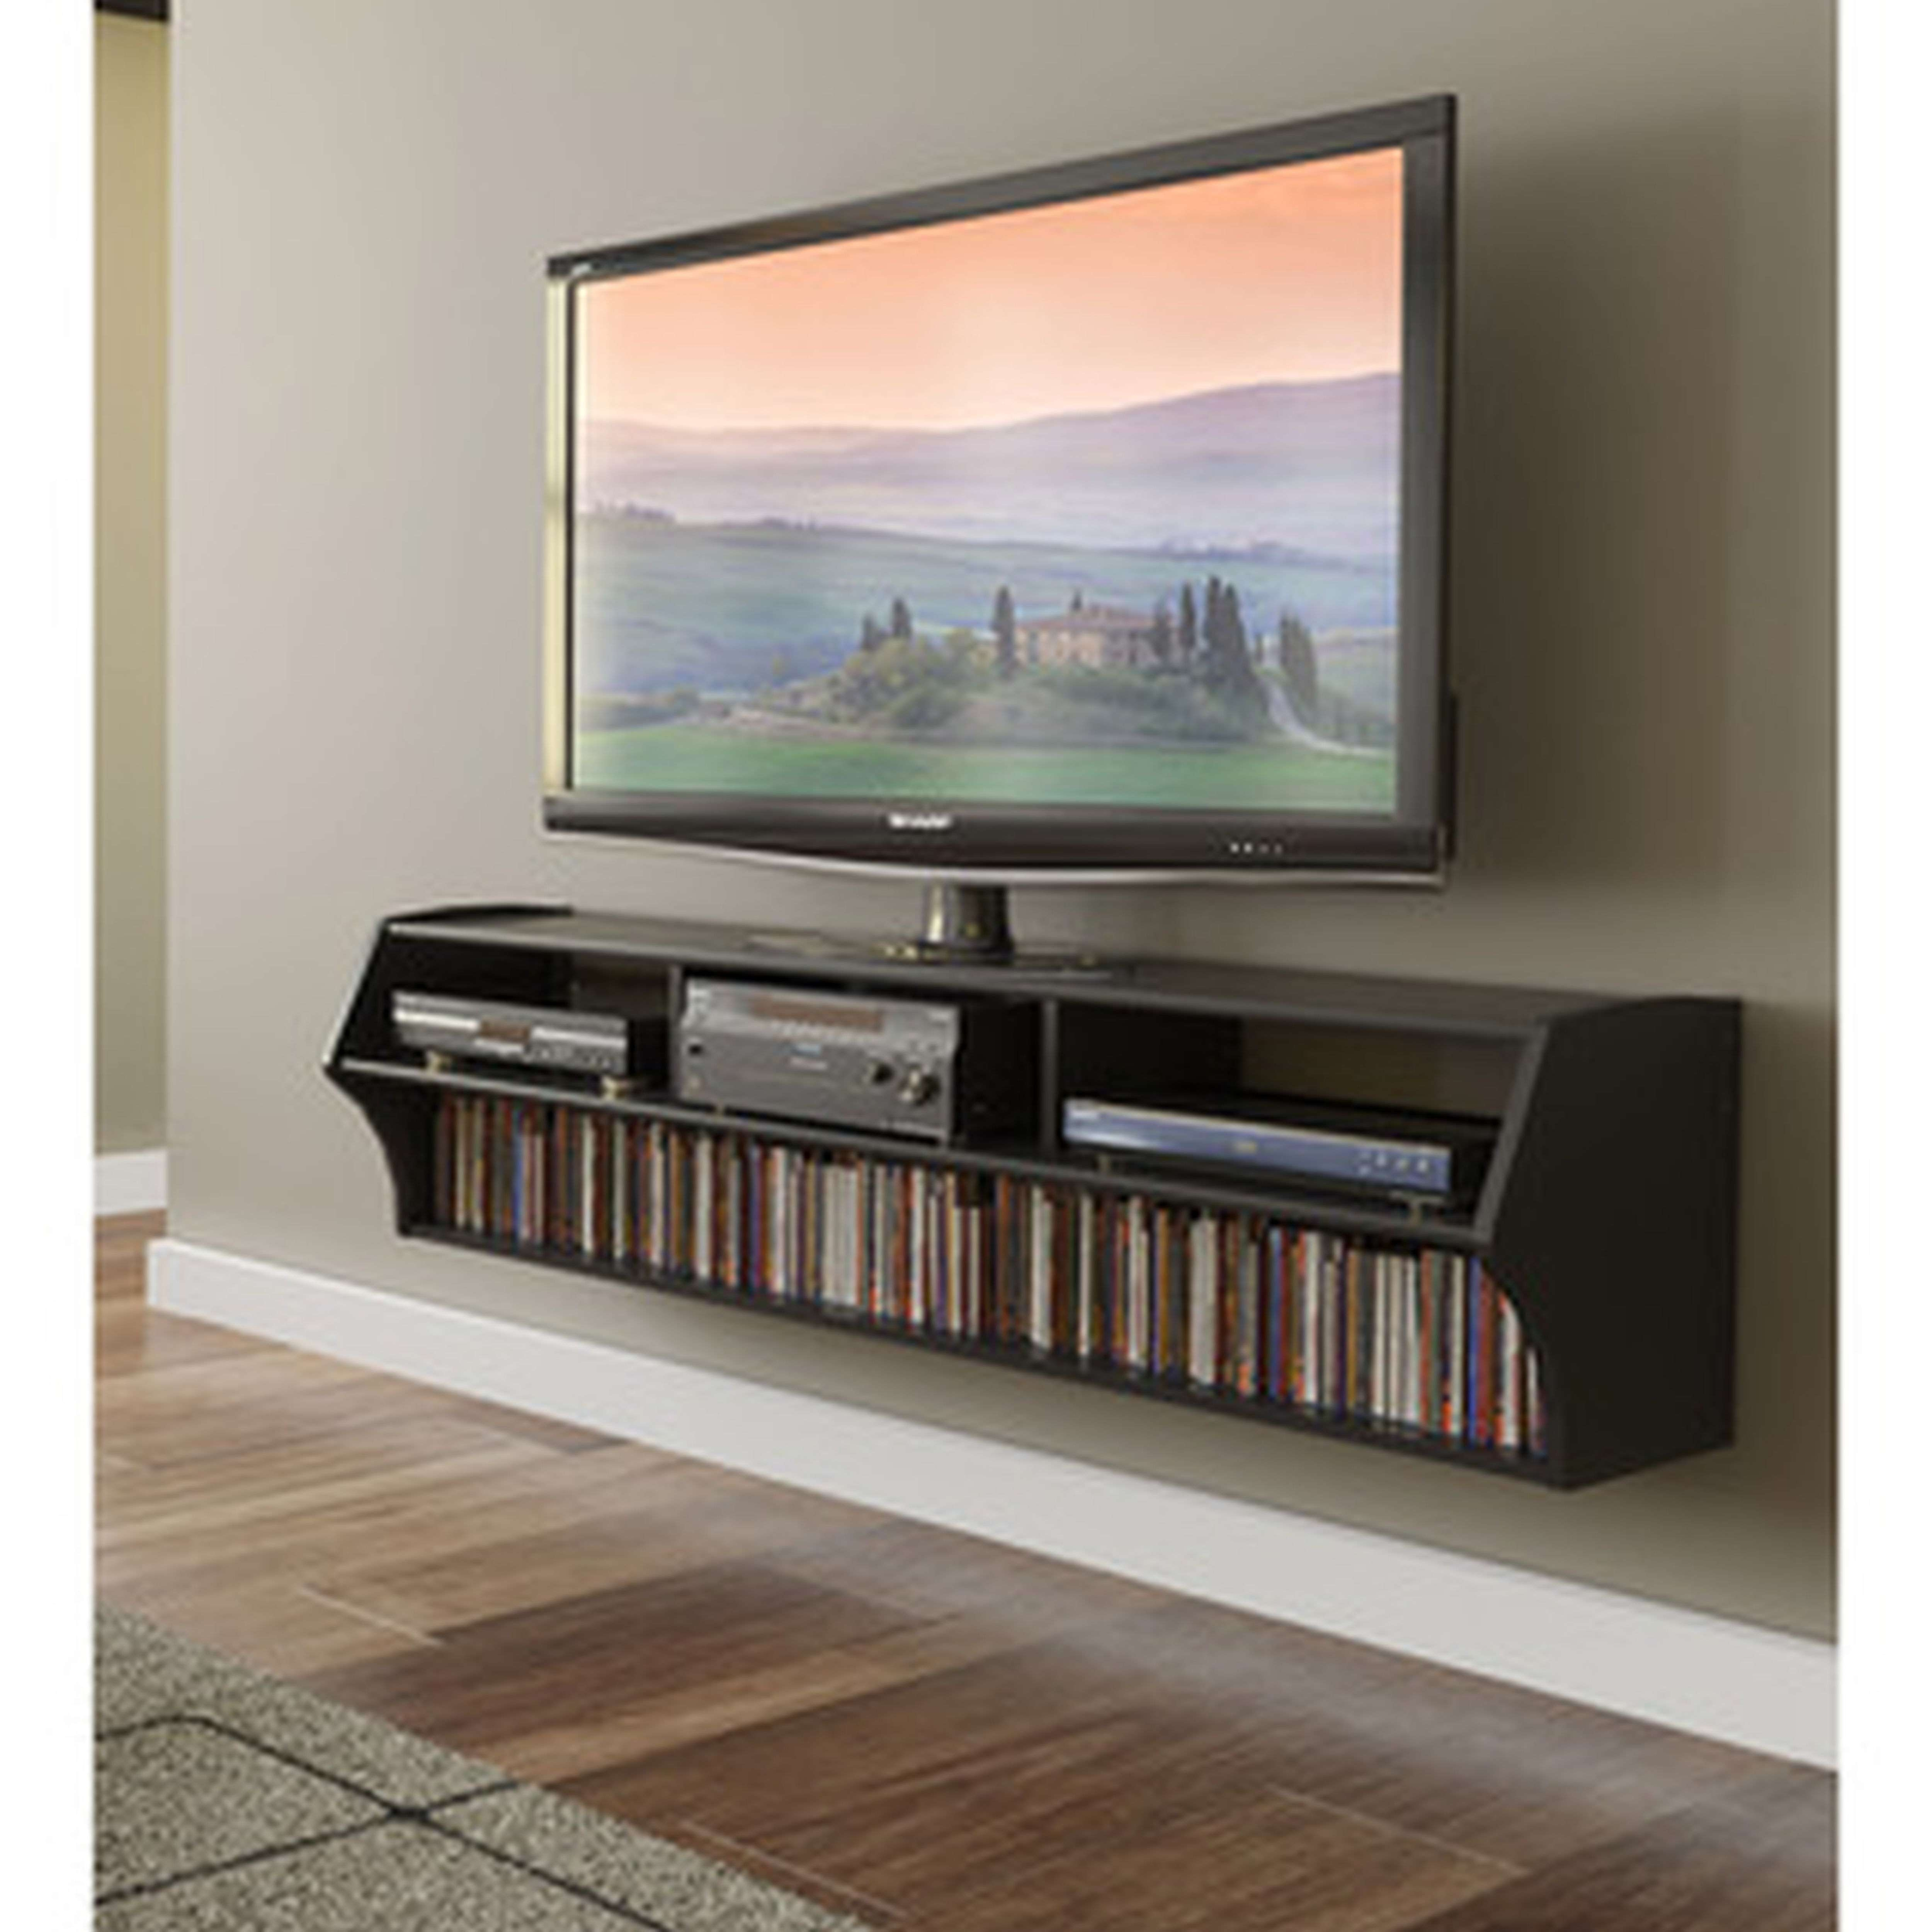 Cool Tv Stand Ideas – Home Design Throughout Cool Tv Stands (View 7 of 15)